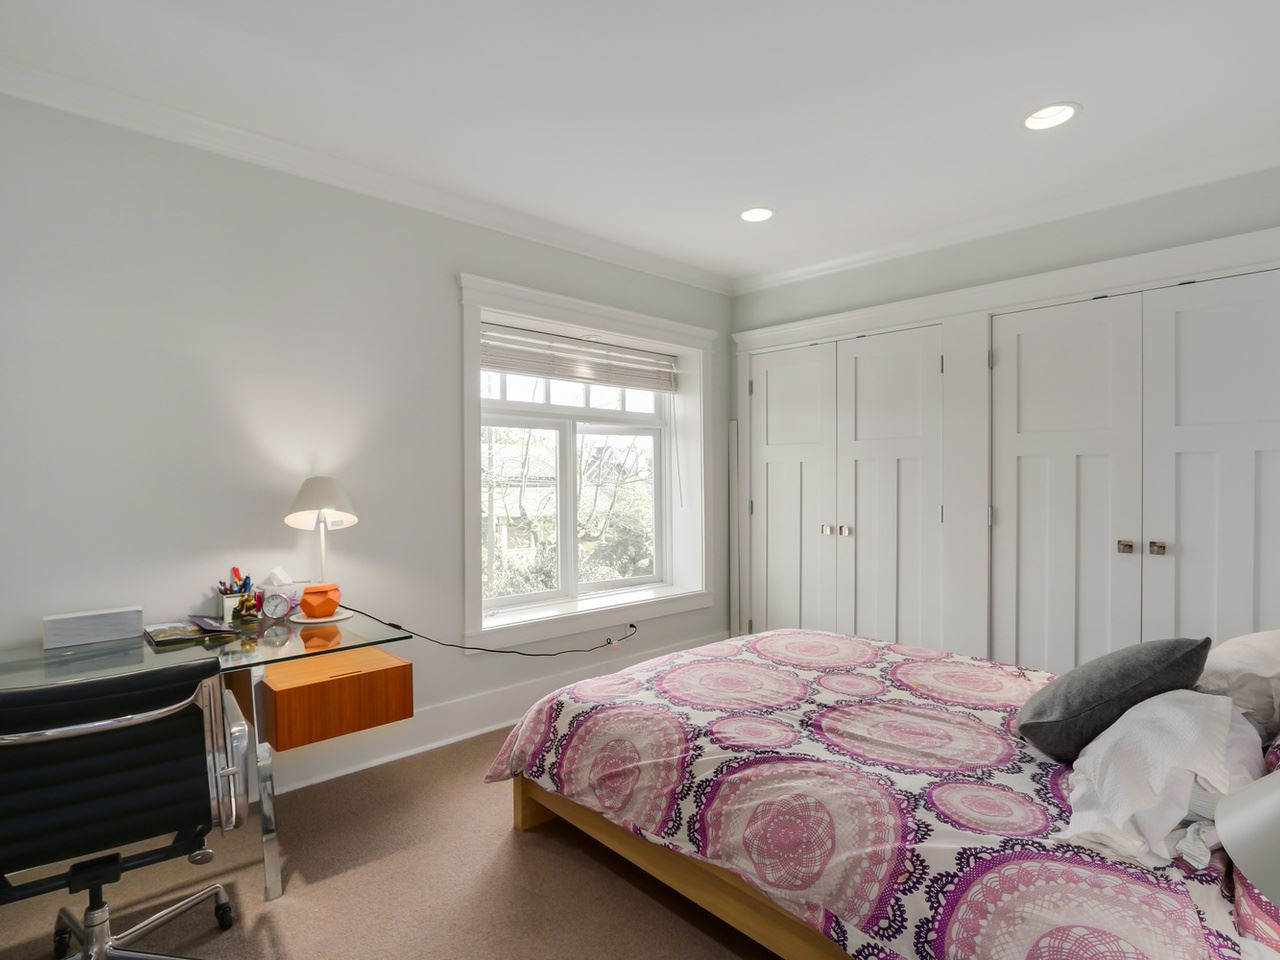 Photo 14: 1835 COLLINGWOOD STREET in Vancouver: Kitsilano House for sale (Vancouver West)  : MLS(r) # R2039694